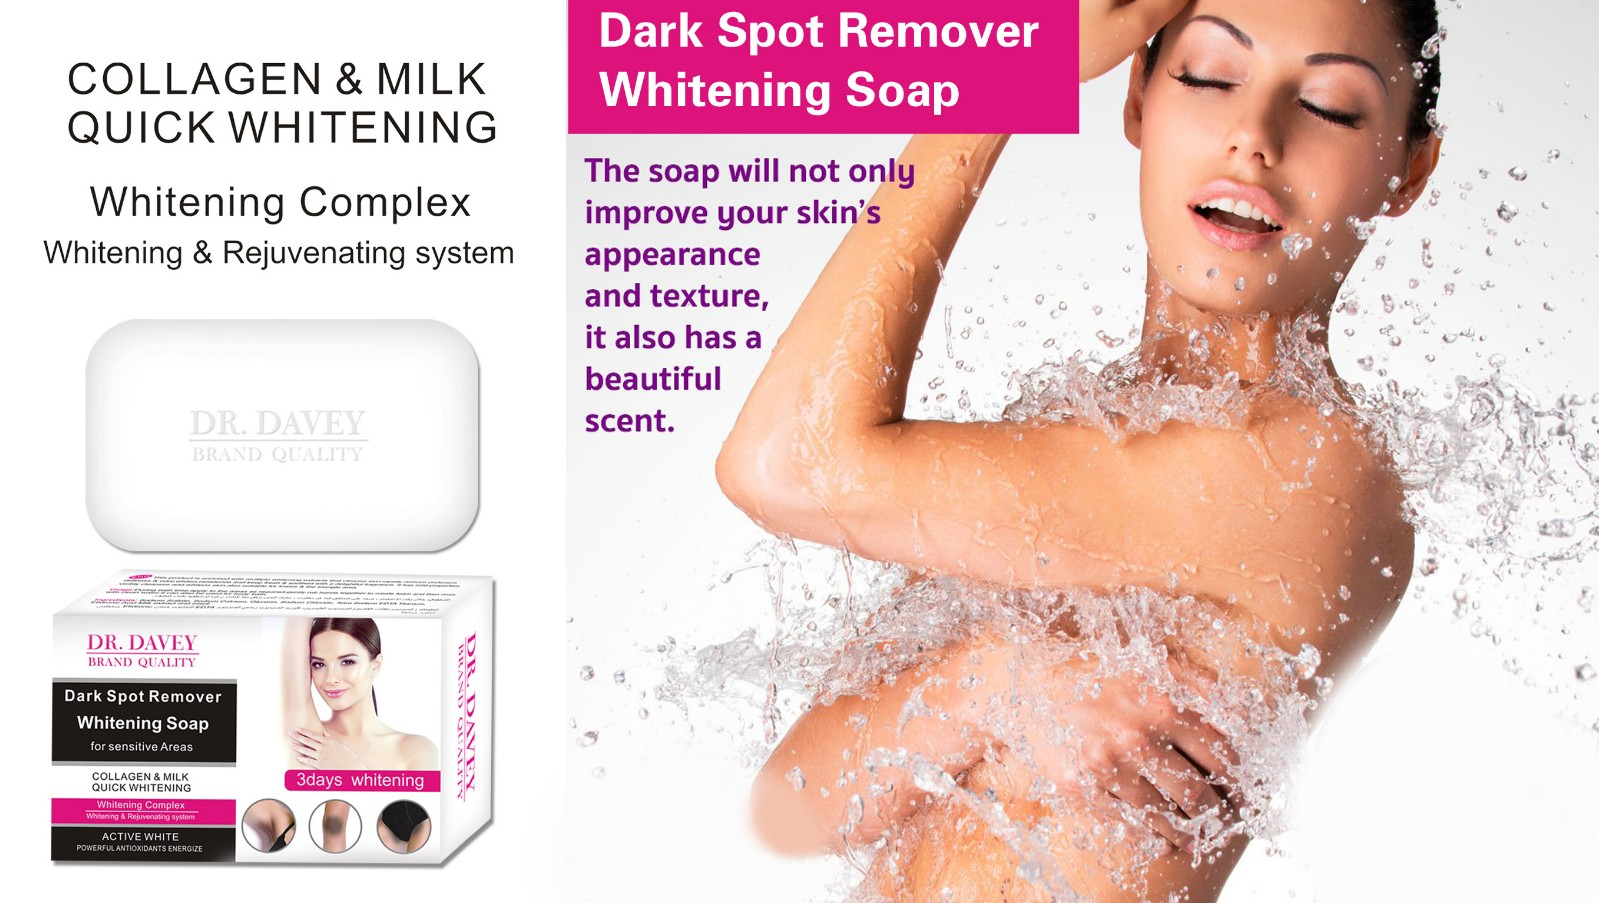 Dark Spot Remover Whitening Soap